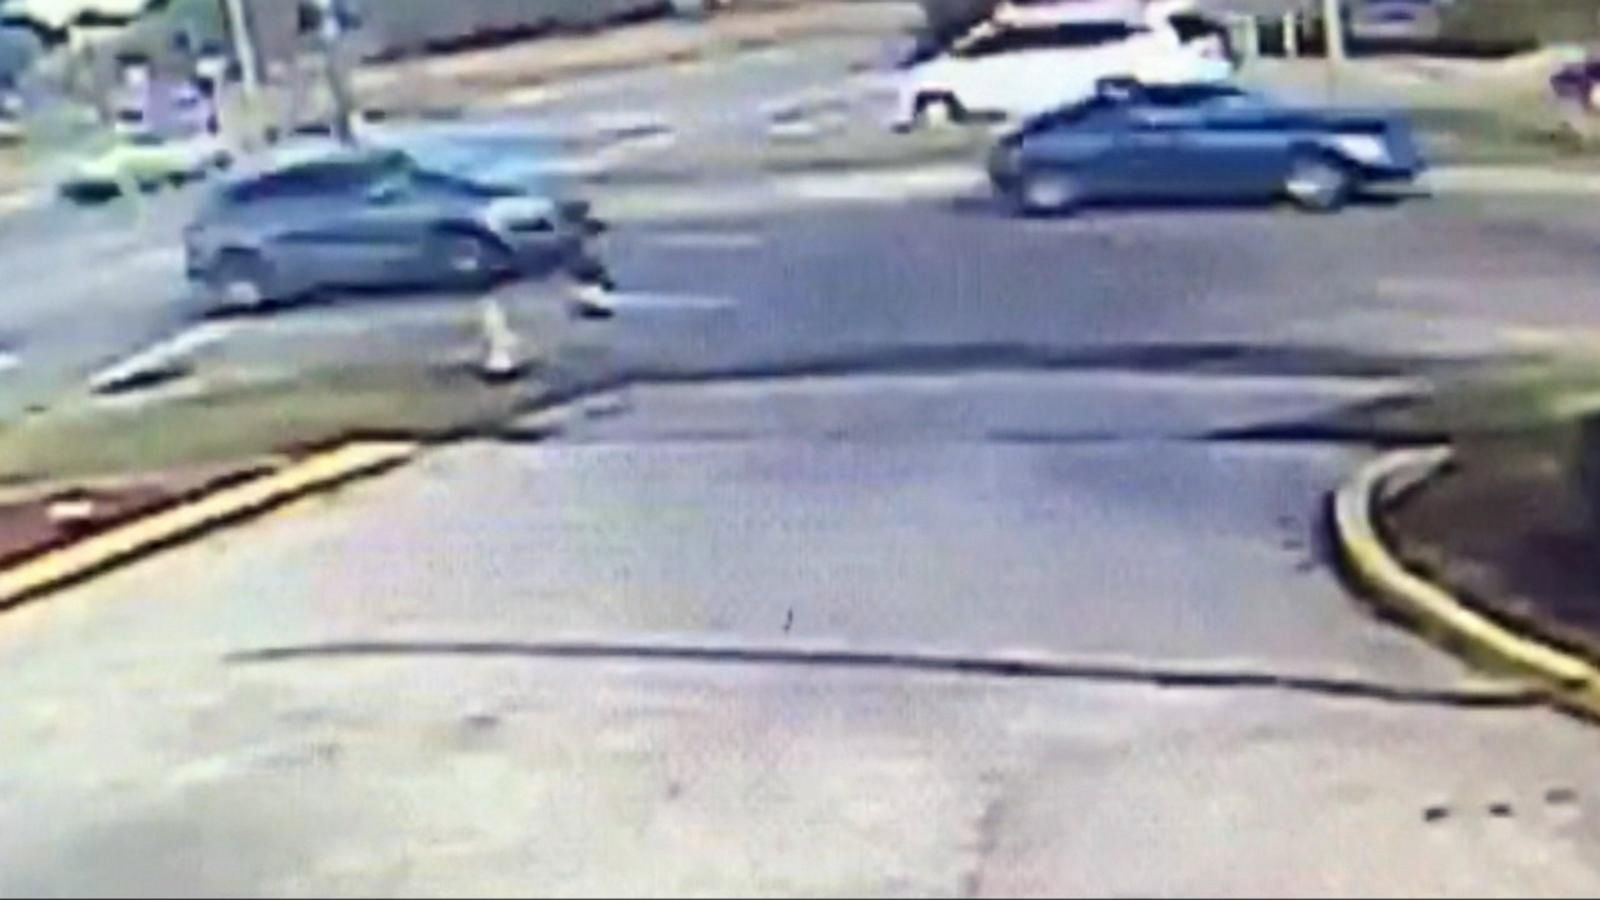 VIDEO: Footage Appears to Show Cars Later Involved in Road Rage Incident